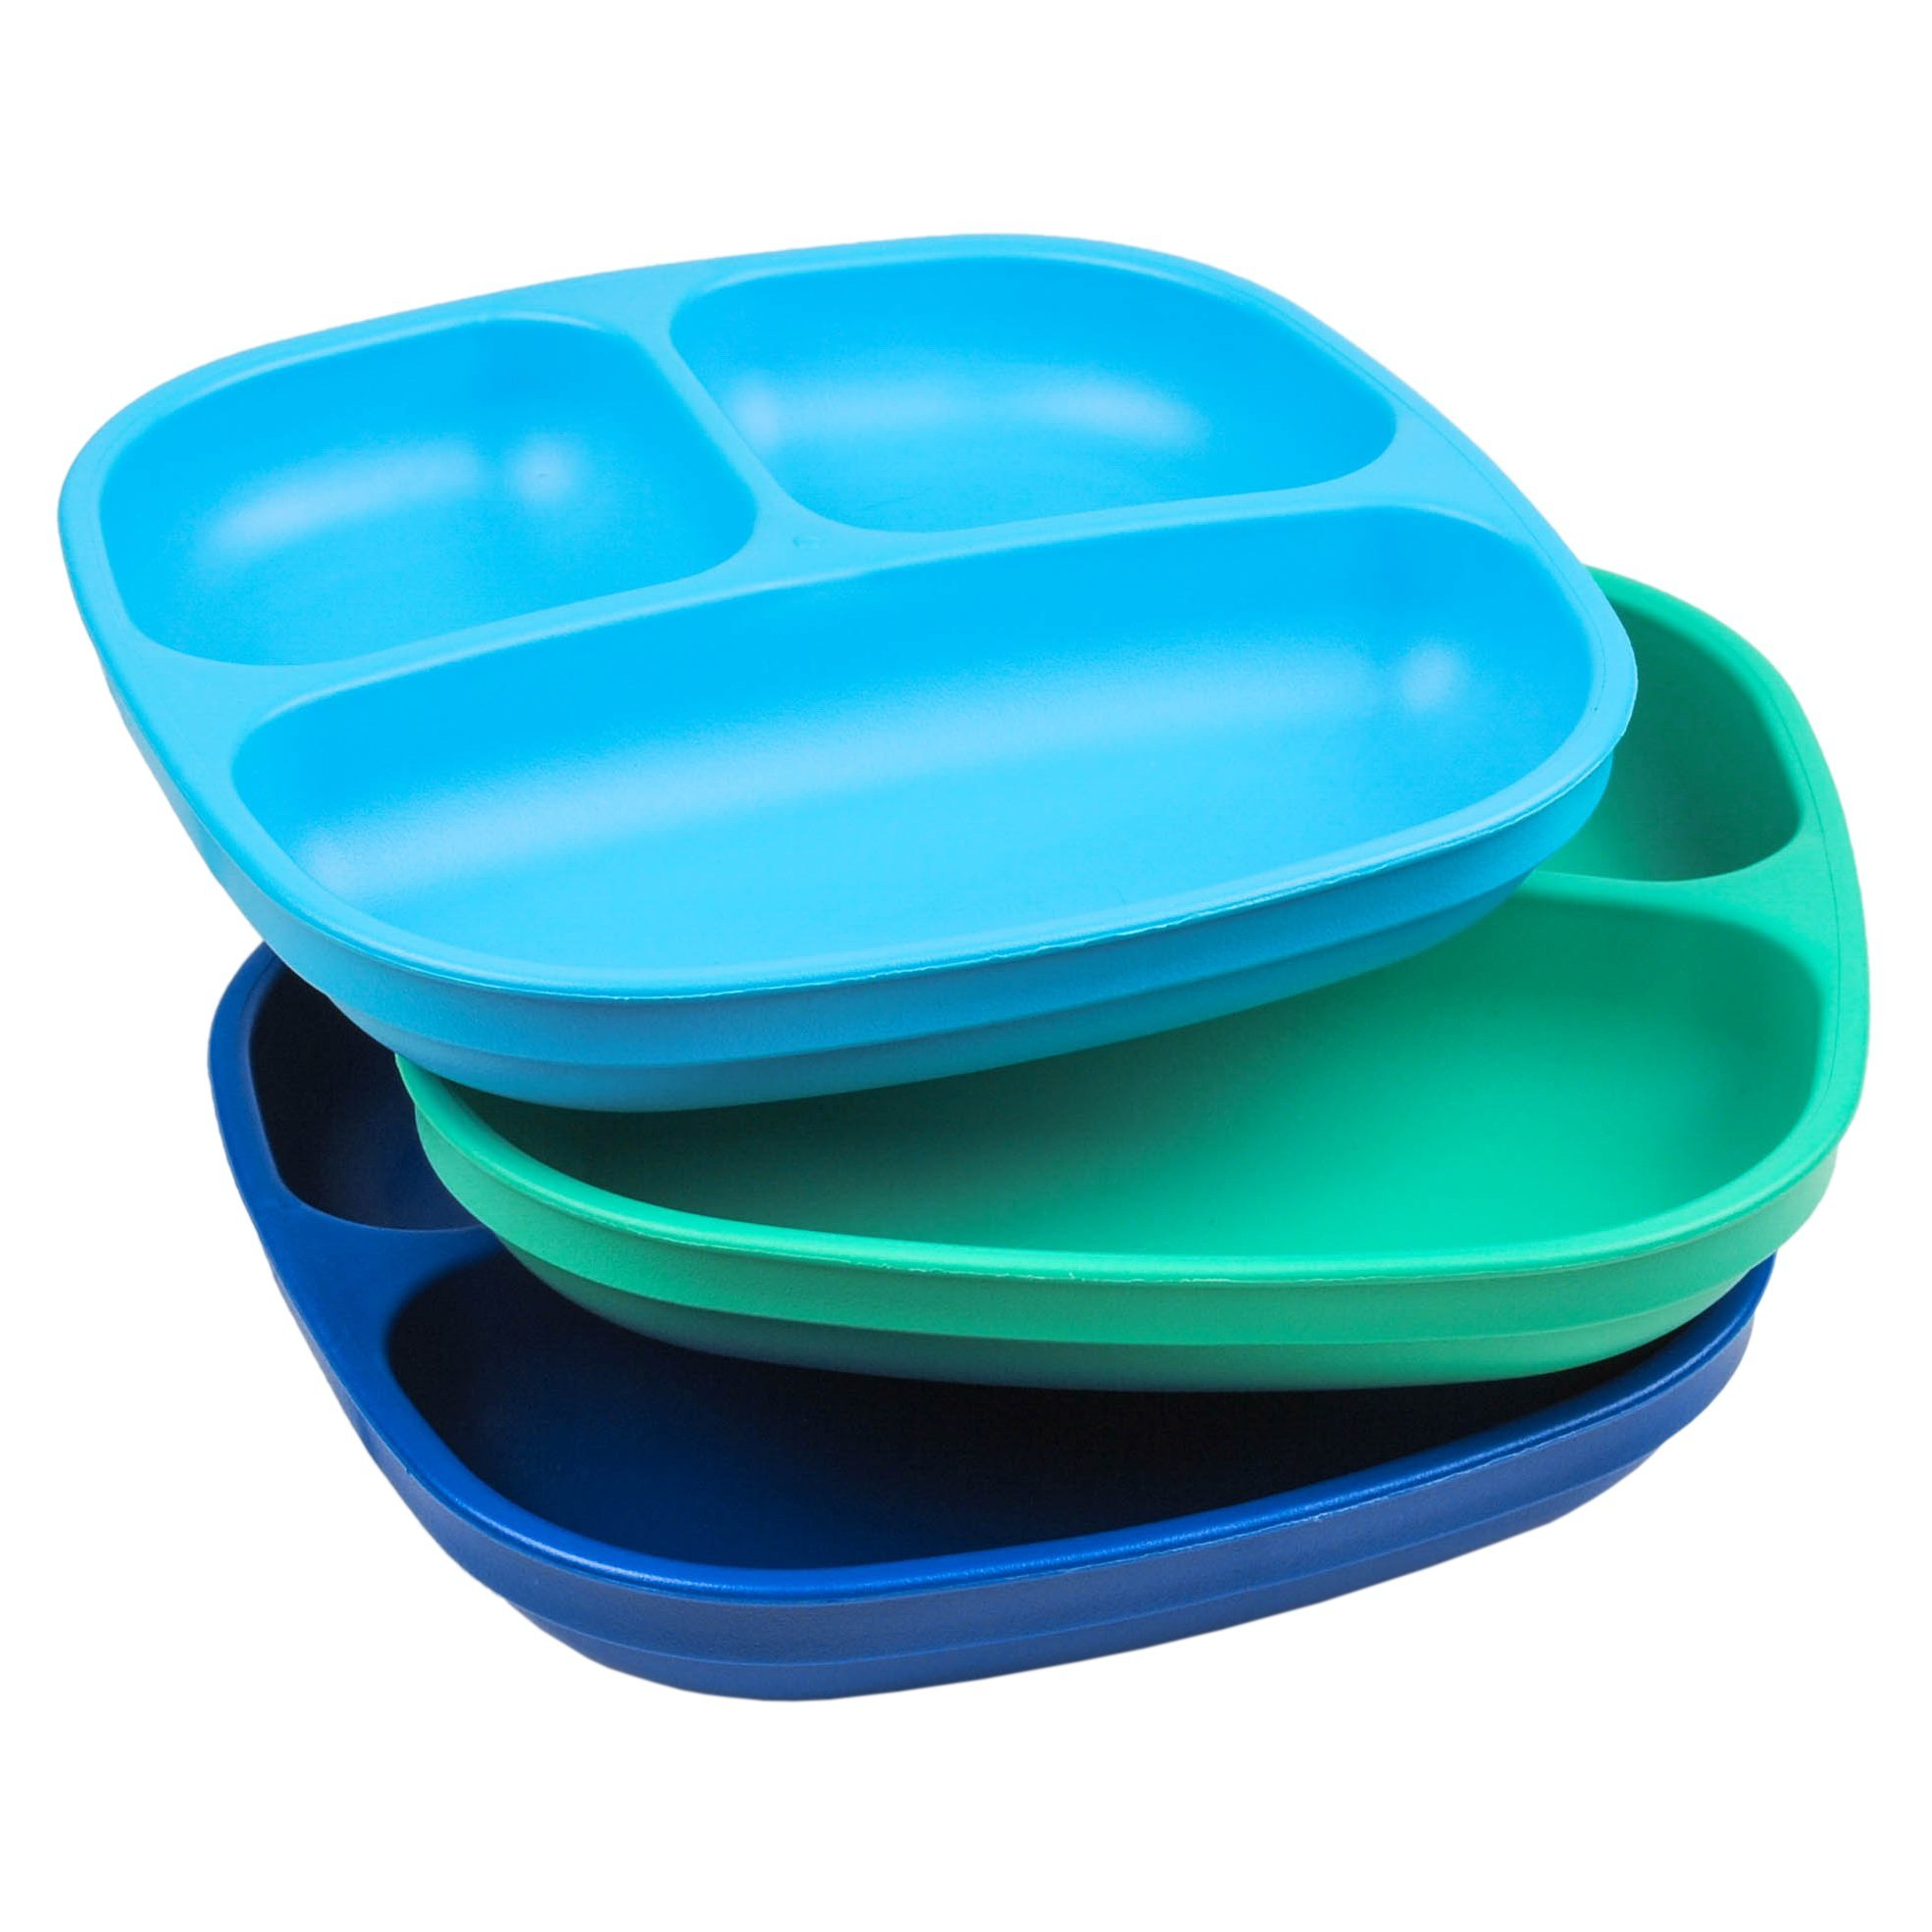 Bowls & Plates Dependable Baby Weaning Plate